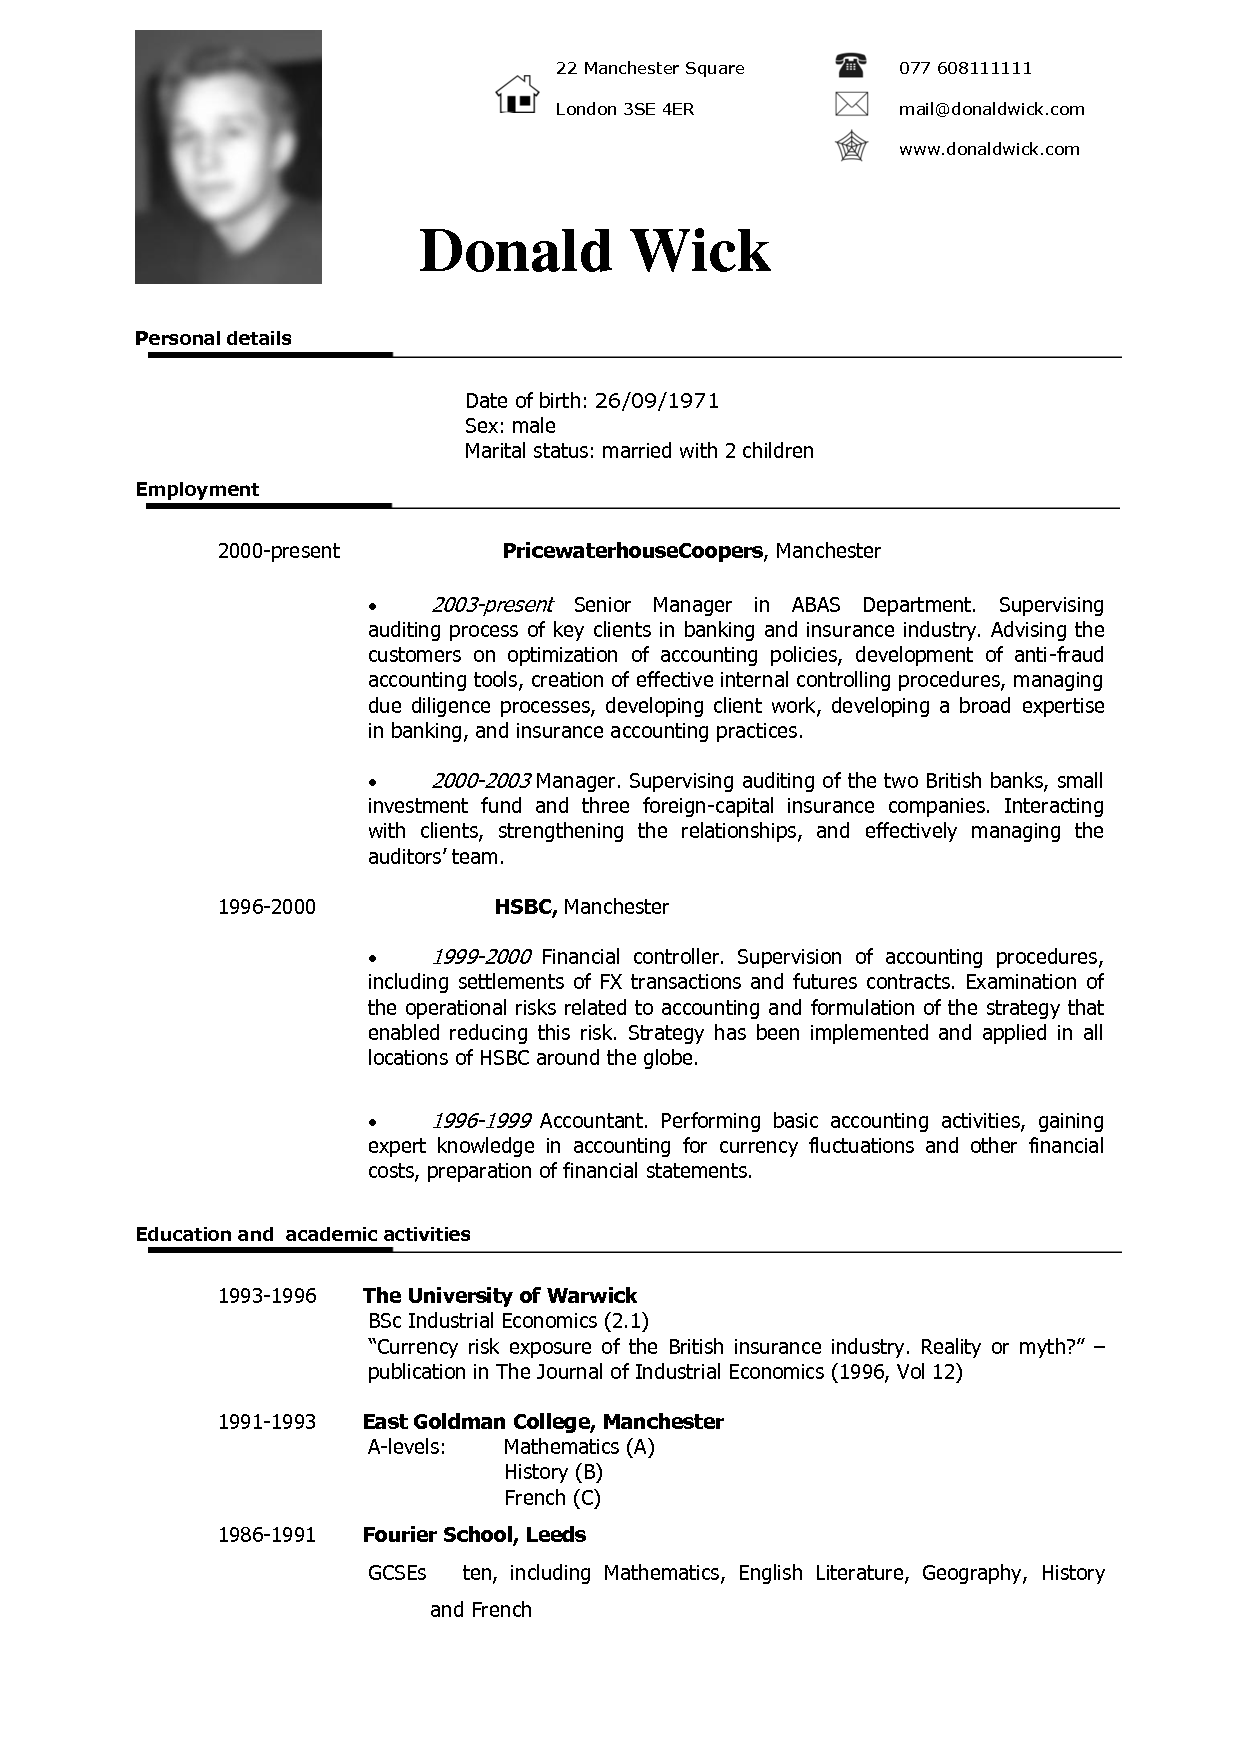 Sample Of Curriculum Vitae Good Format Of Cv American Curriculum Good Resume Examples Phwcnp